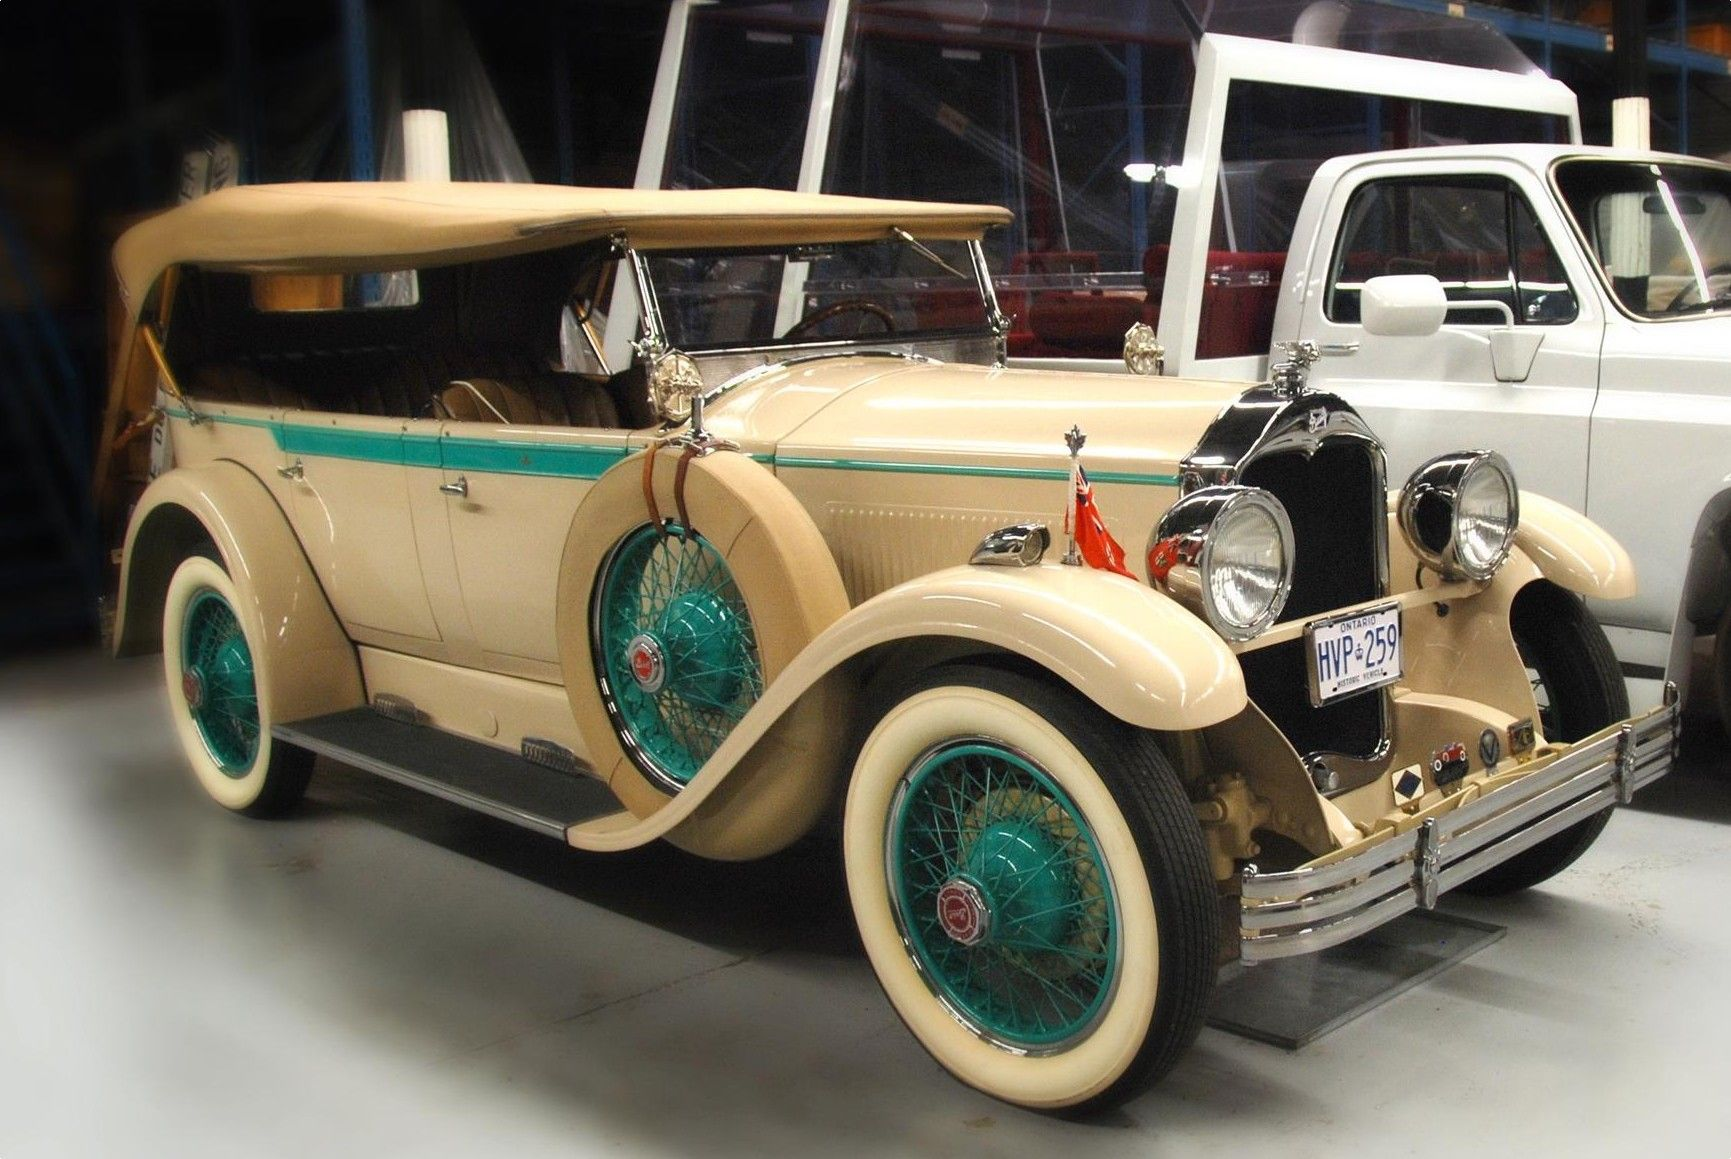 1927 Mclaughlin Buick Made For Royal Tour Lisa Phillips